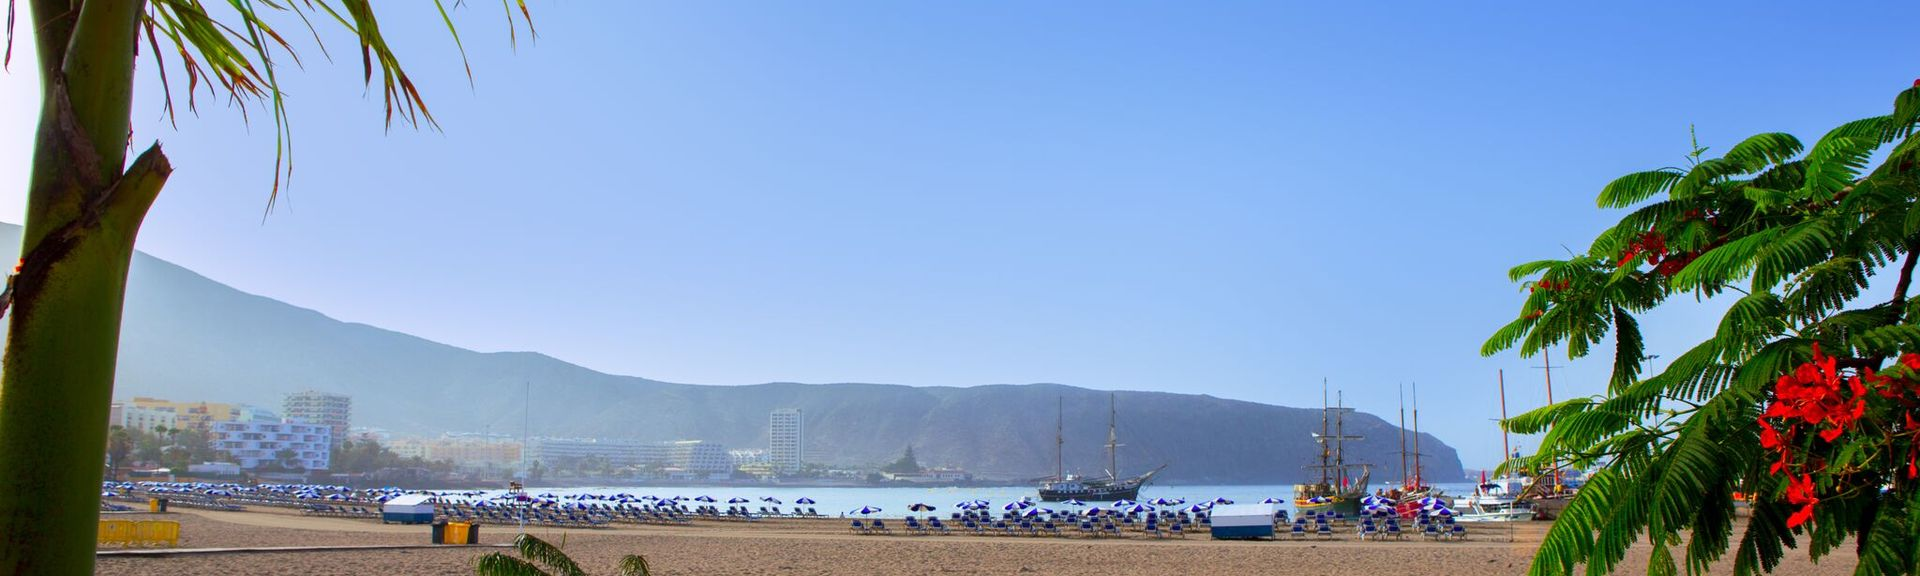 Los Cristianos, Arona, Canary Islands, Spain